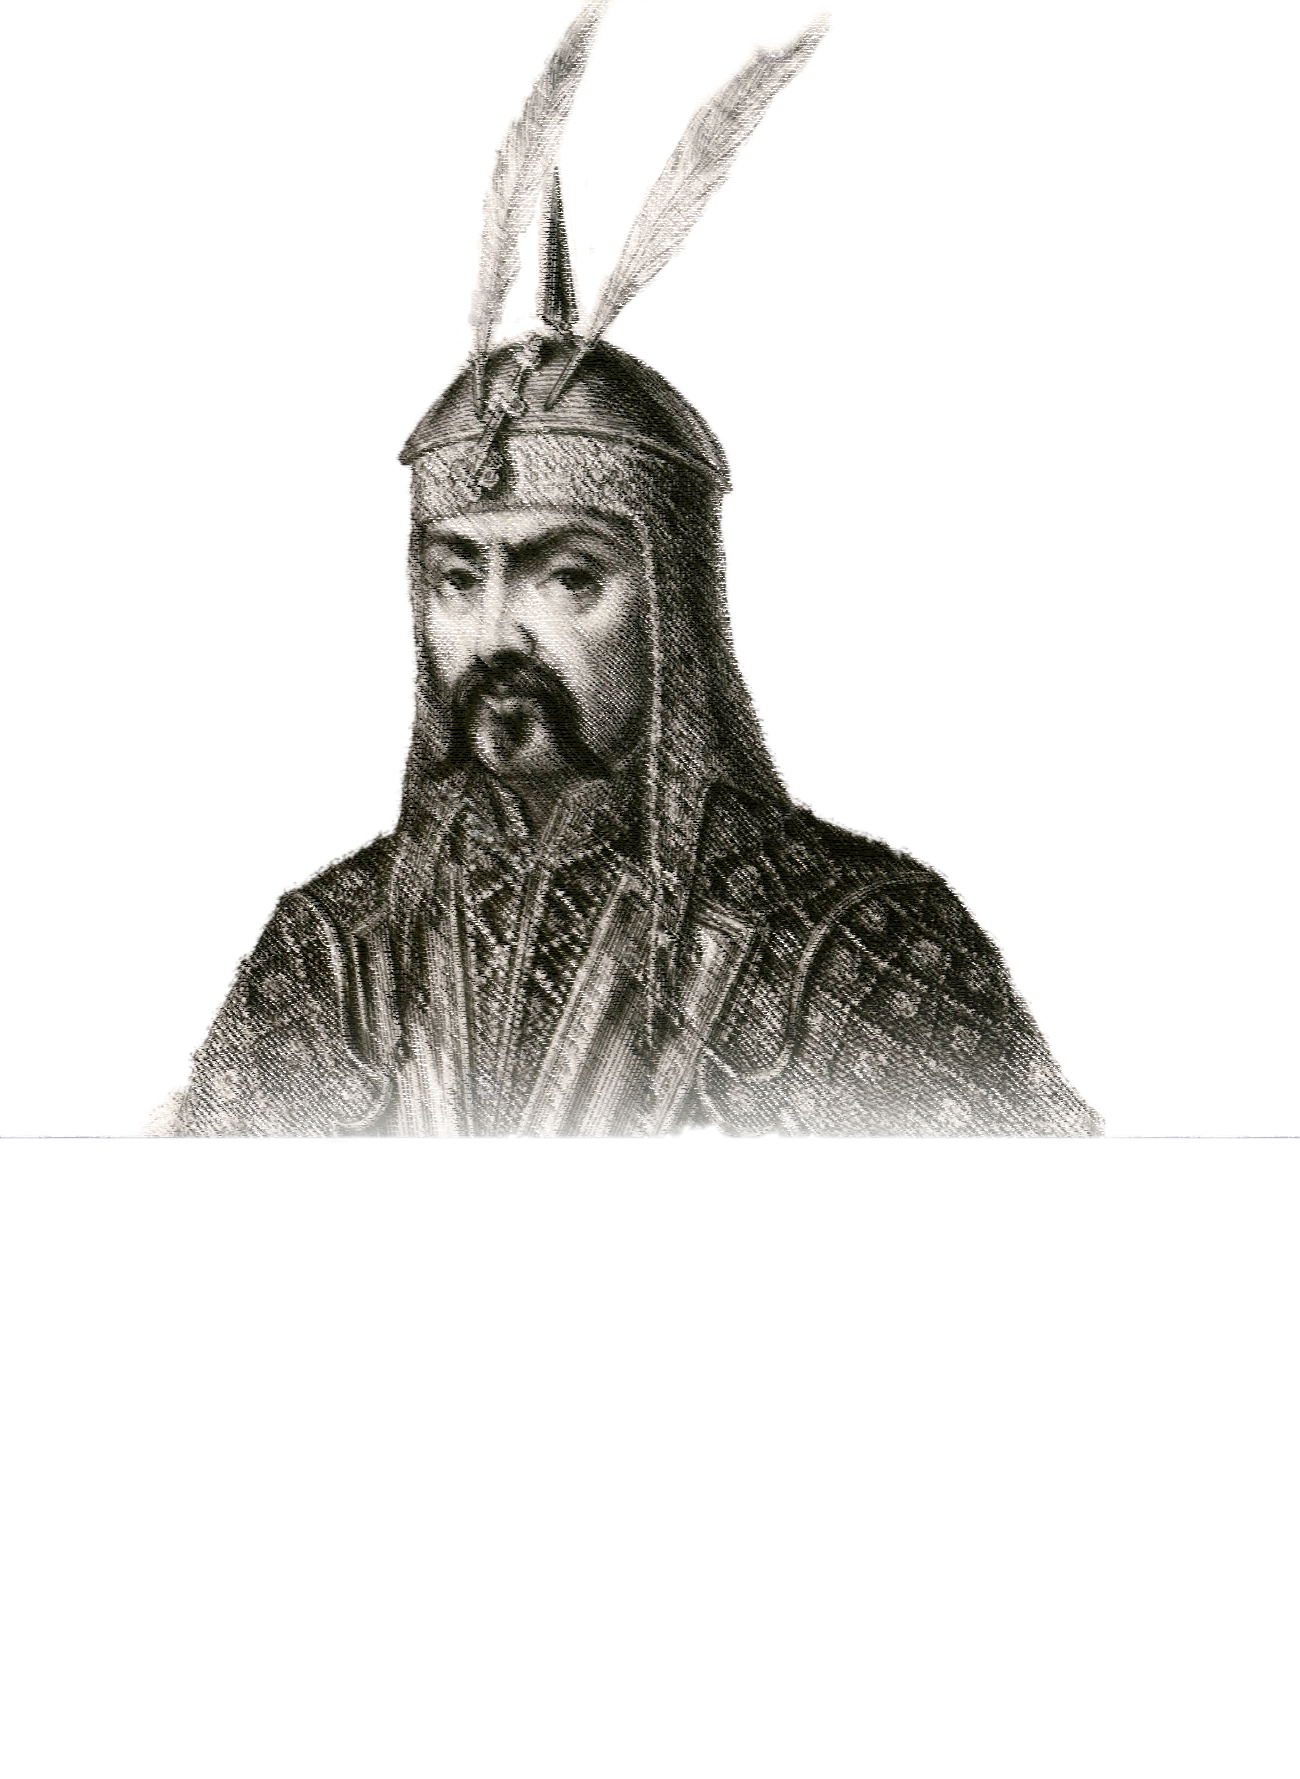 genghis-khan-mongul-warrior-and-ruler-c-1162-1227-BGKTEGG